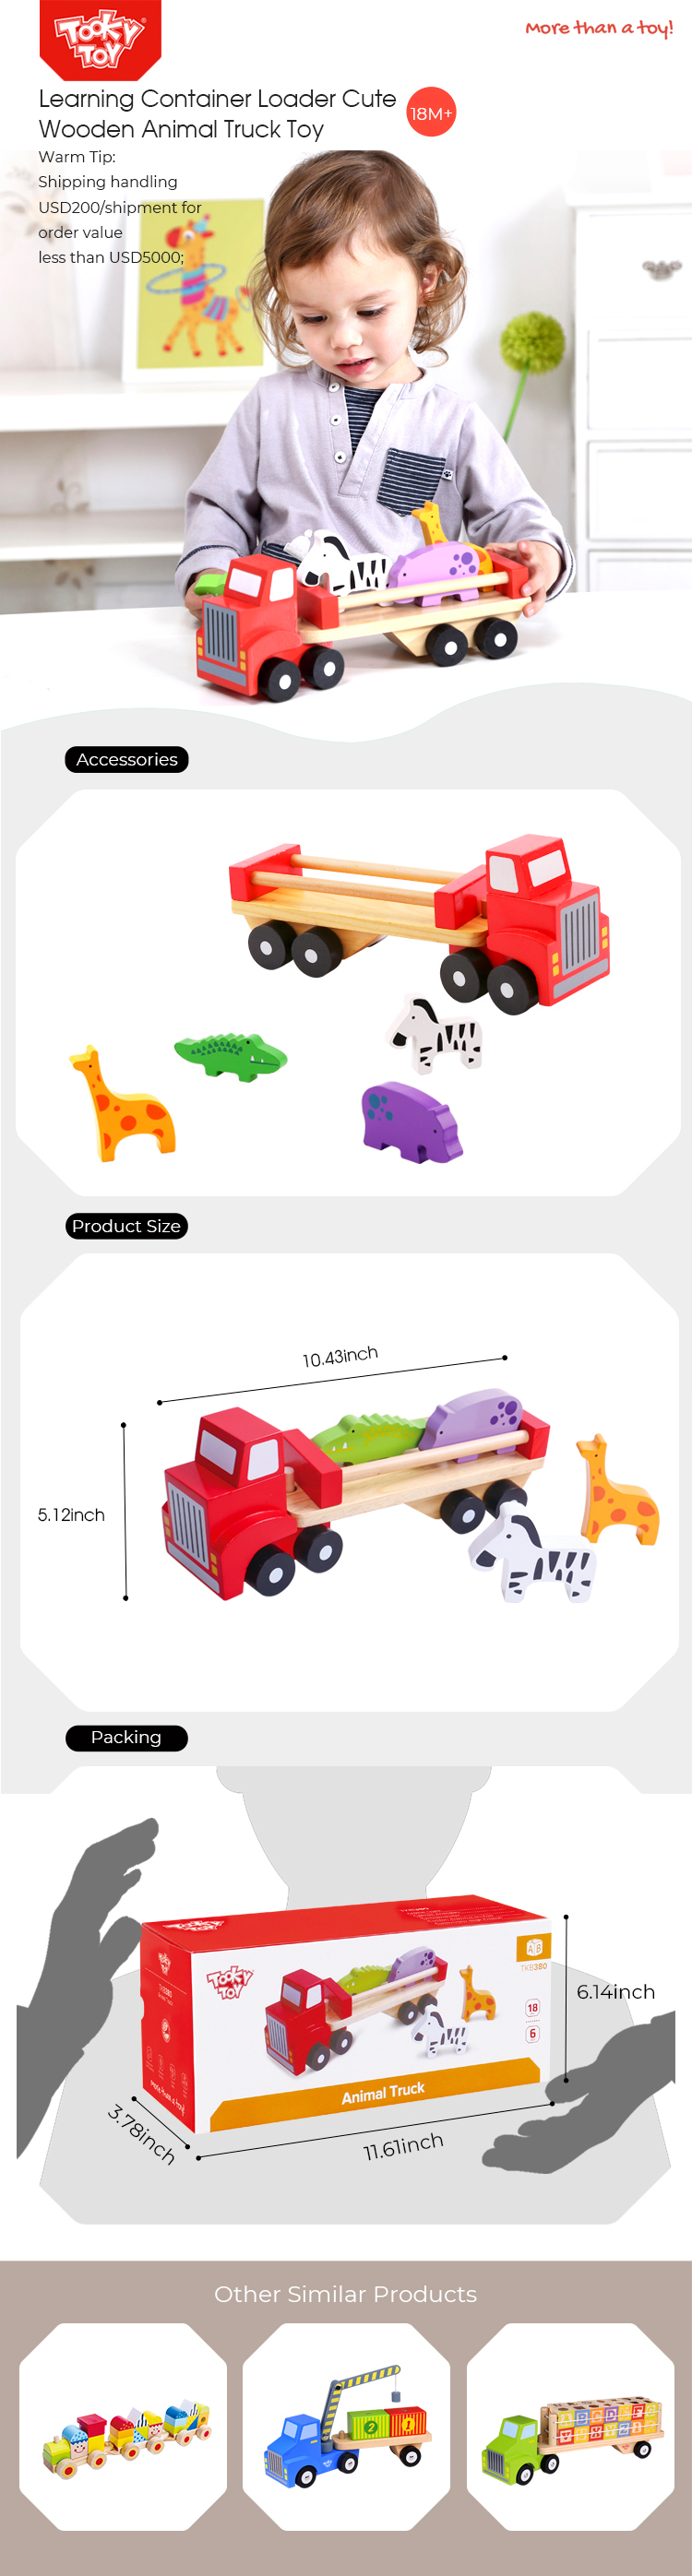 15% Fixed Discount Learning Container Loader Cute Wooden Animal Truck Toy